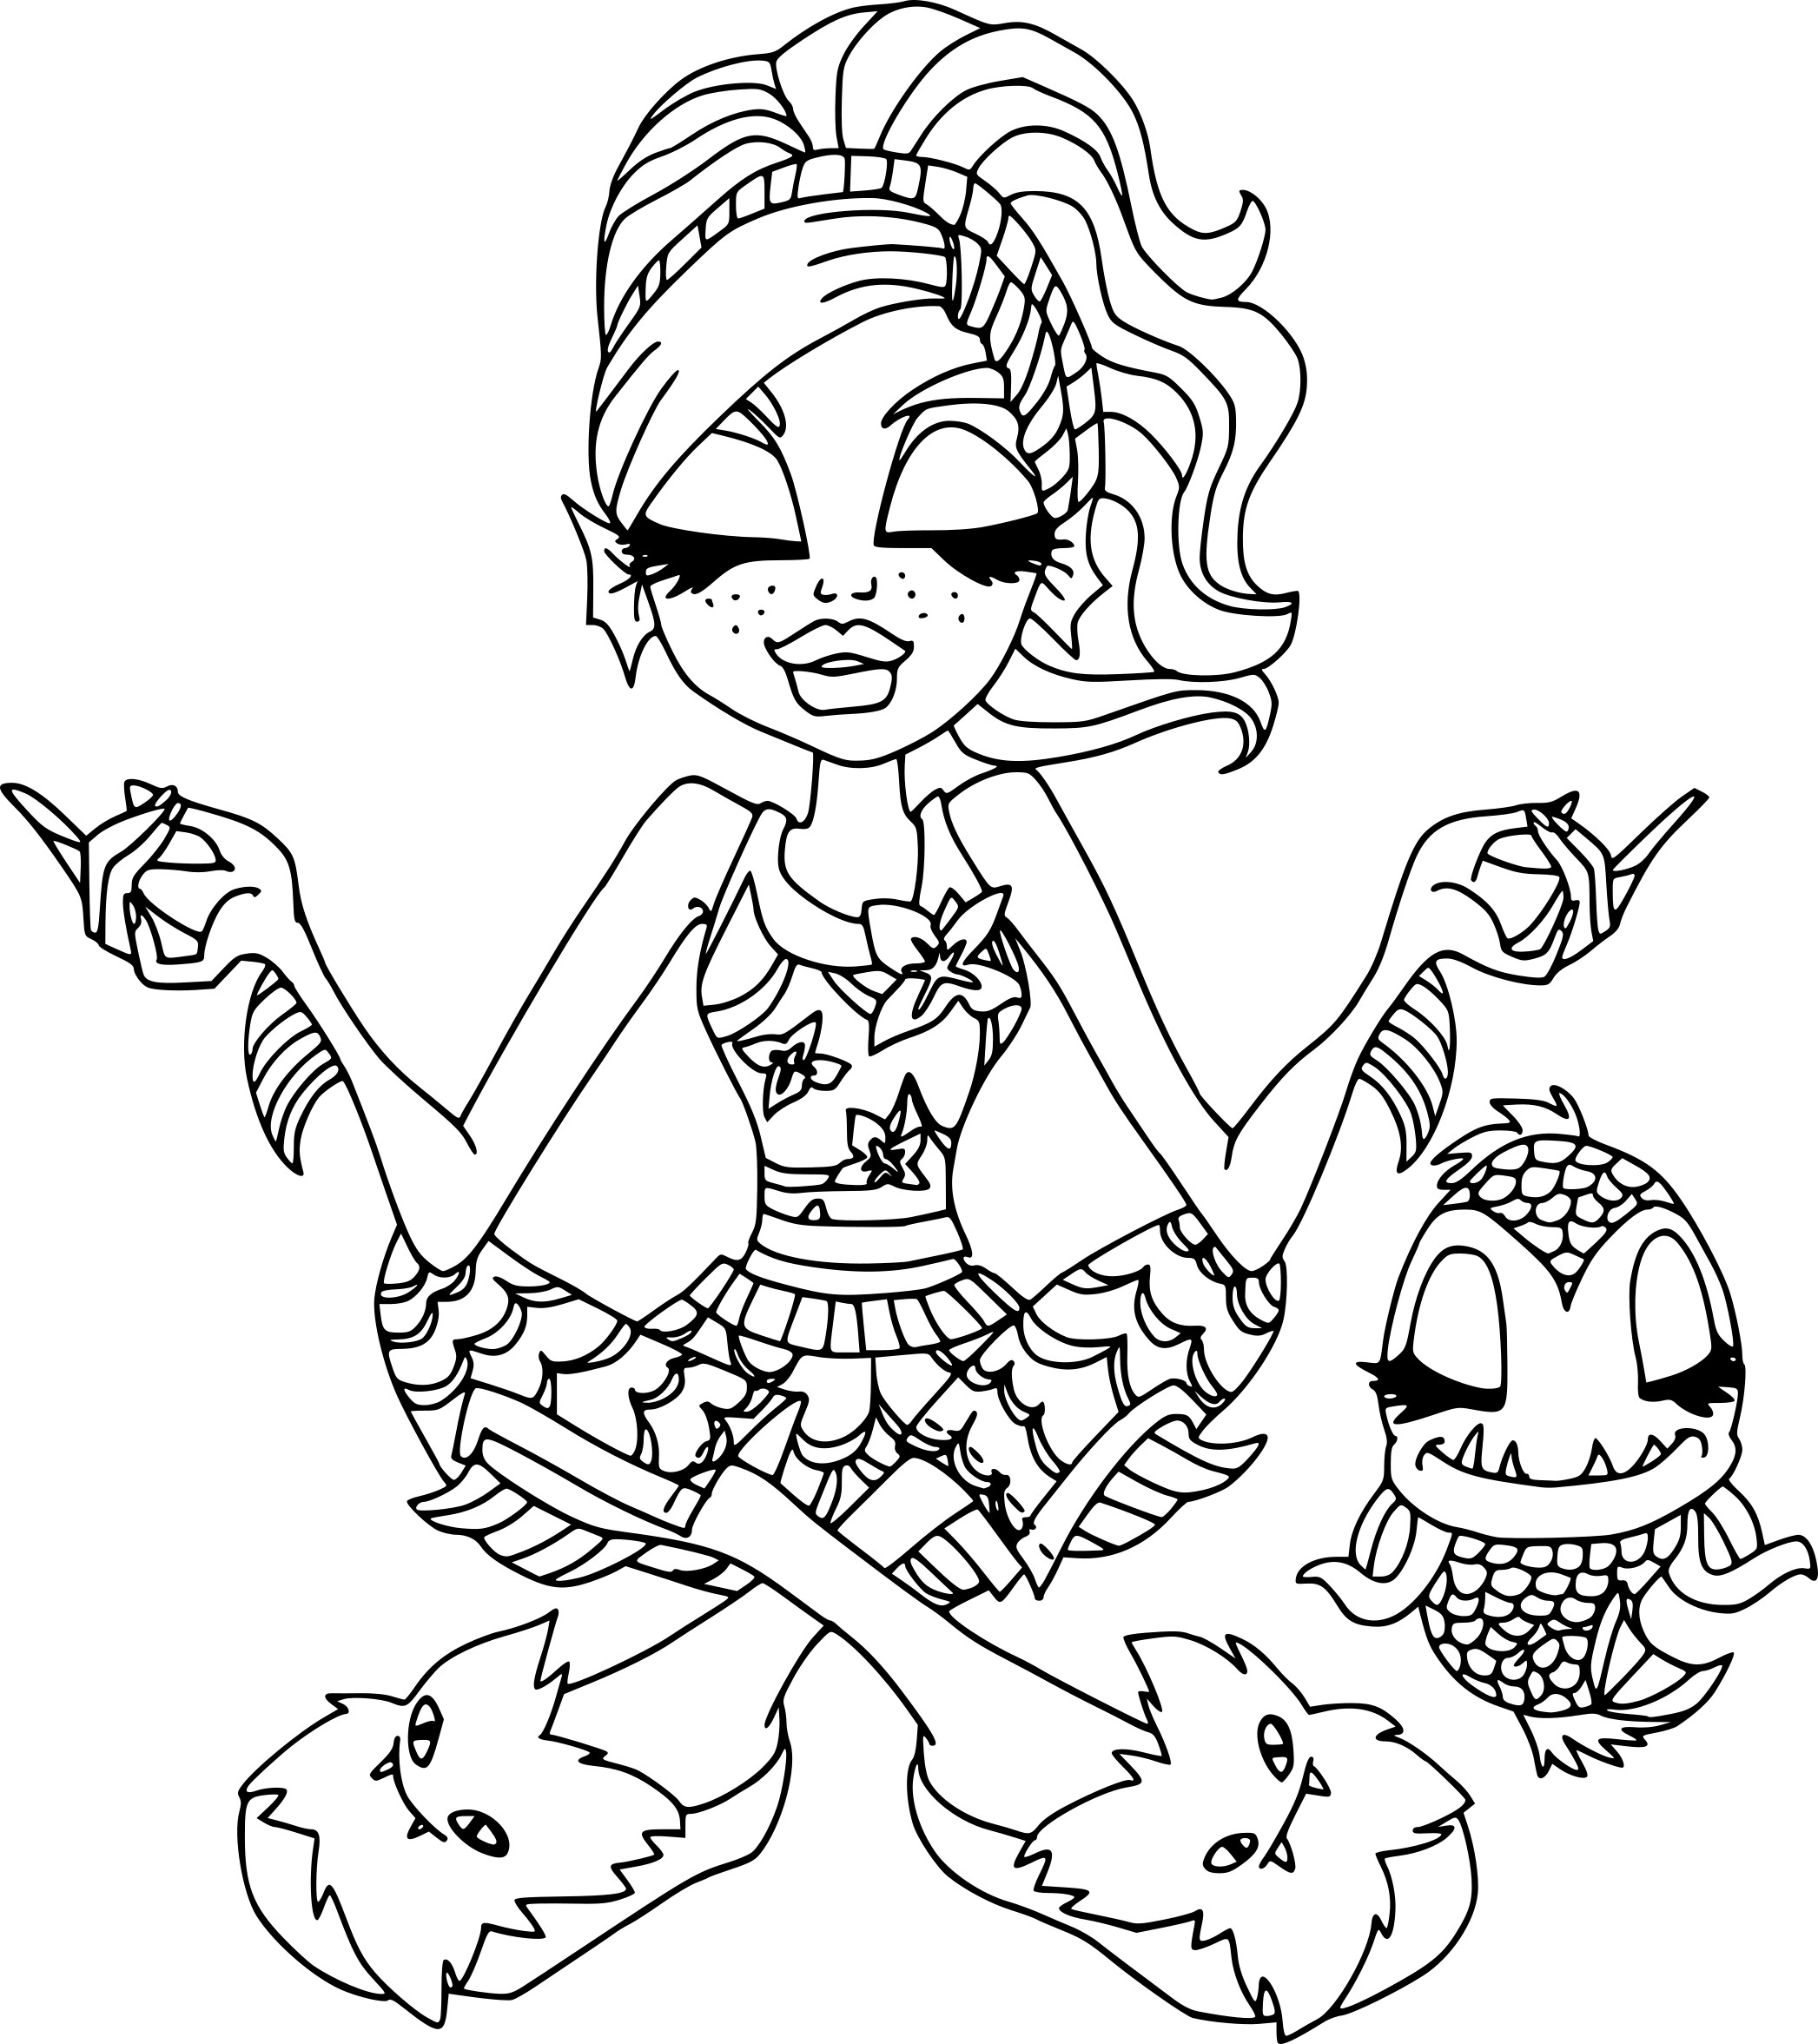 Coloriage monster high lagoona blue imprimer - Coloriage de monster ...